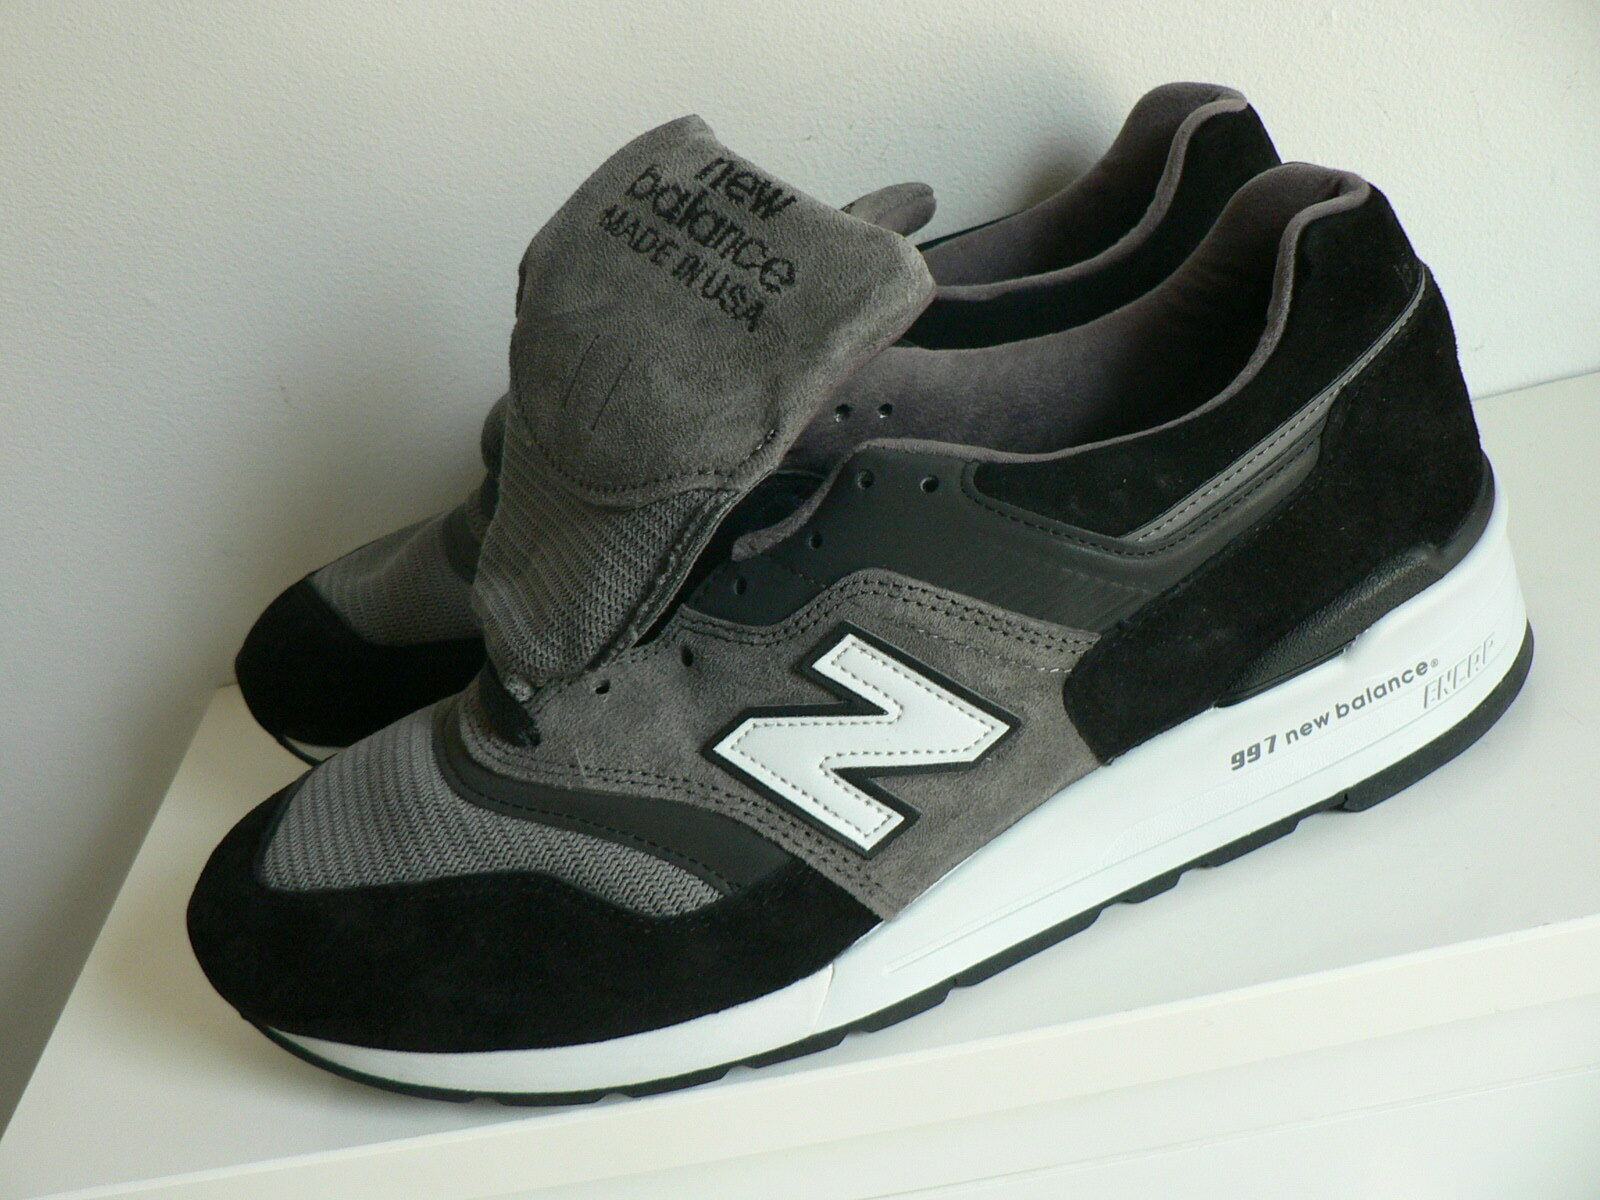 New Balance M997CUR in Black/Grey Size 12 US